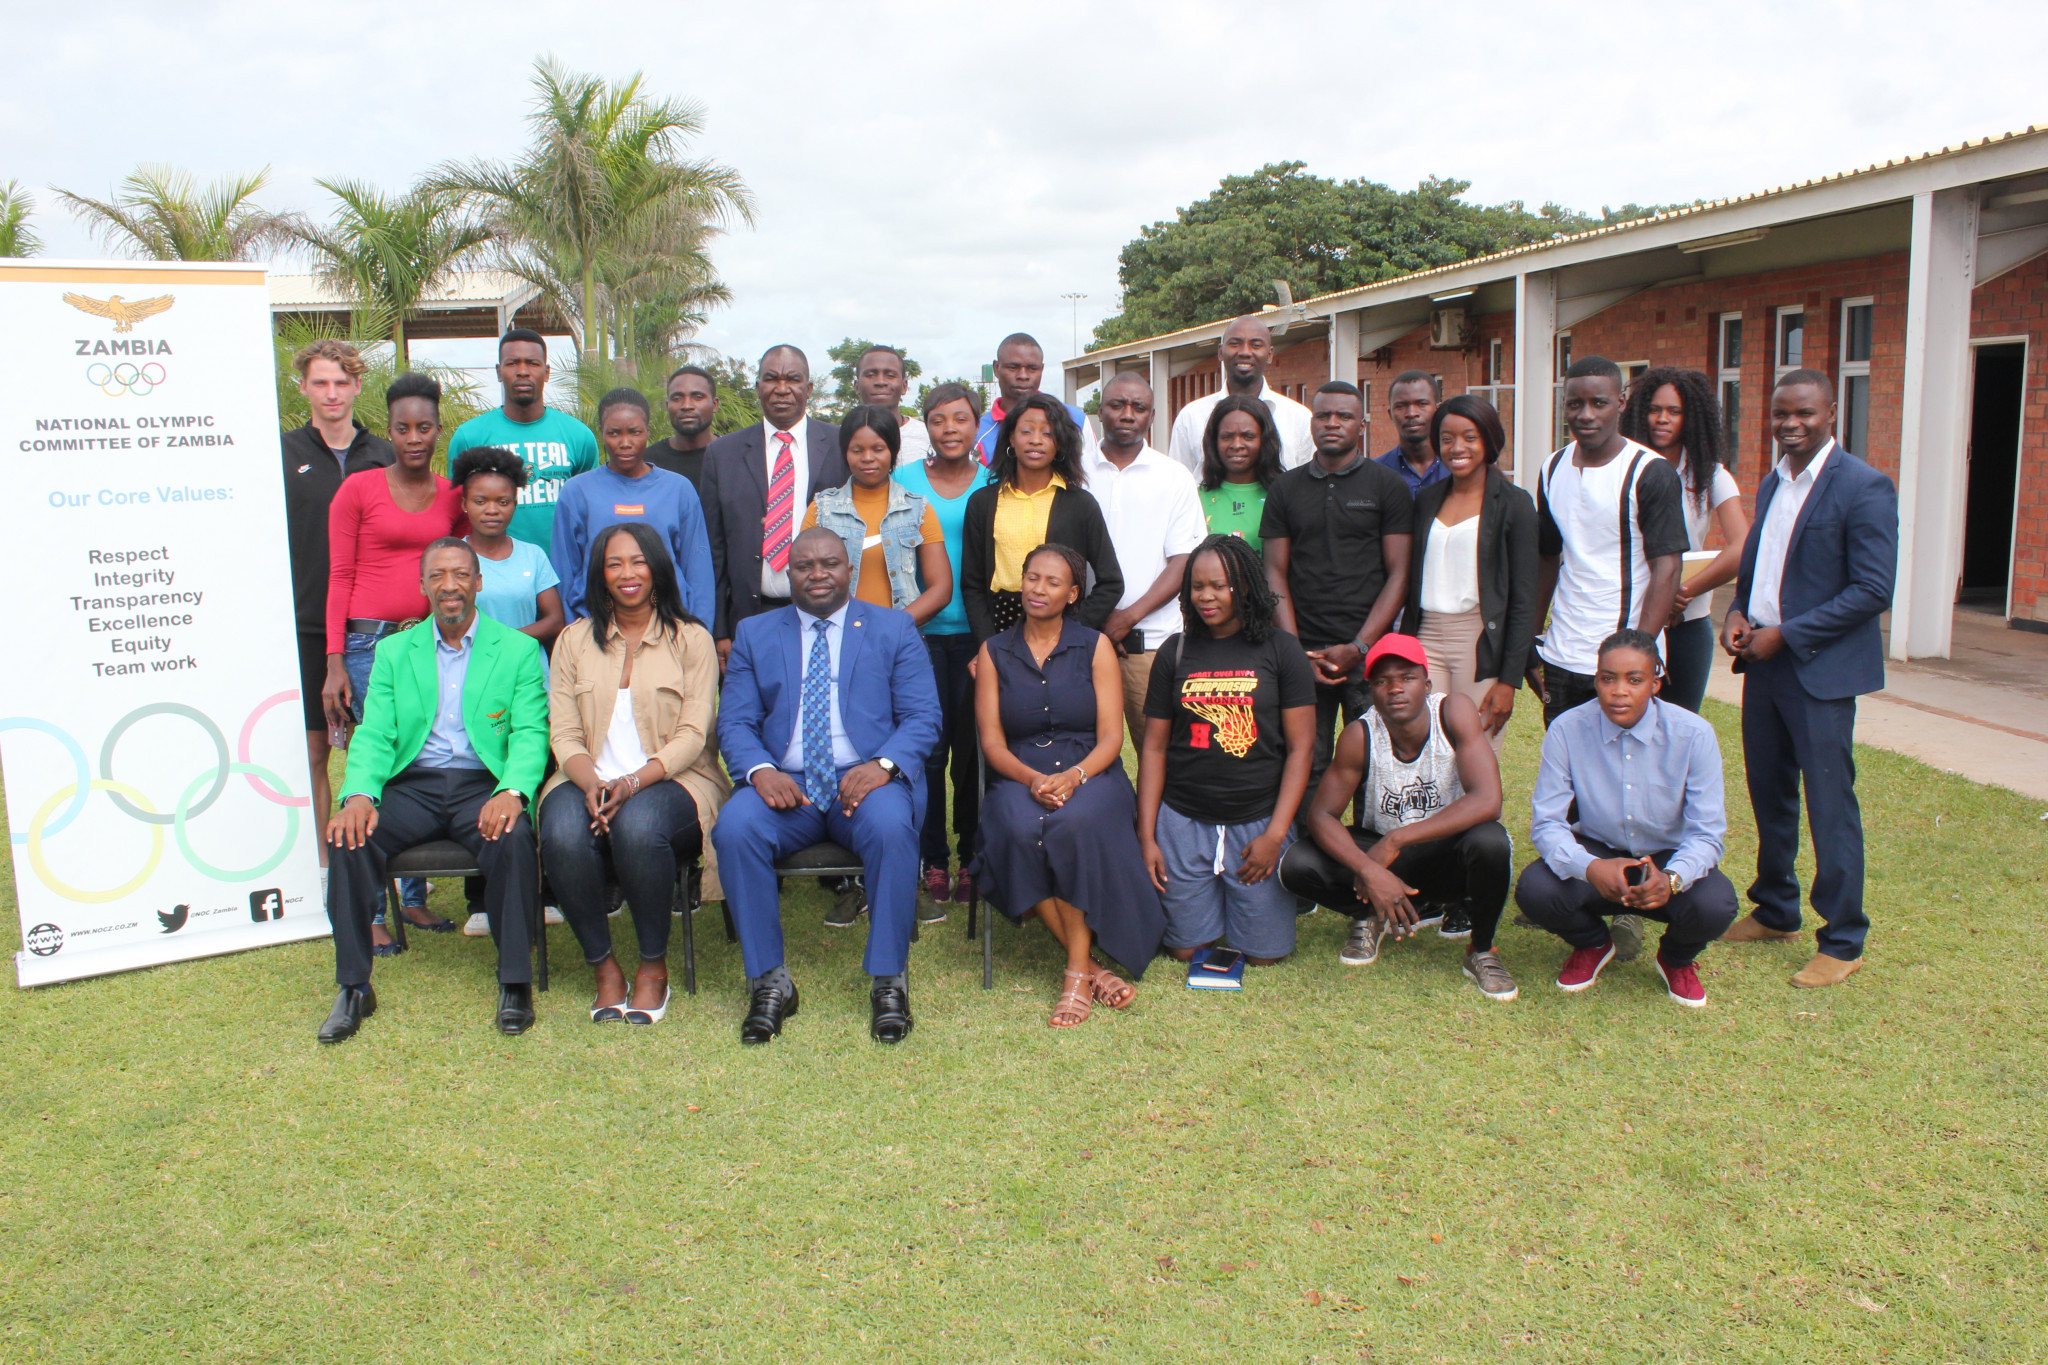 National Olympic Committee of Zambia launches Athletes' Commission